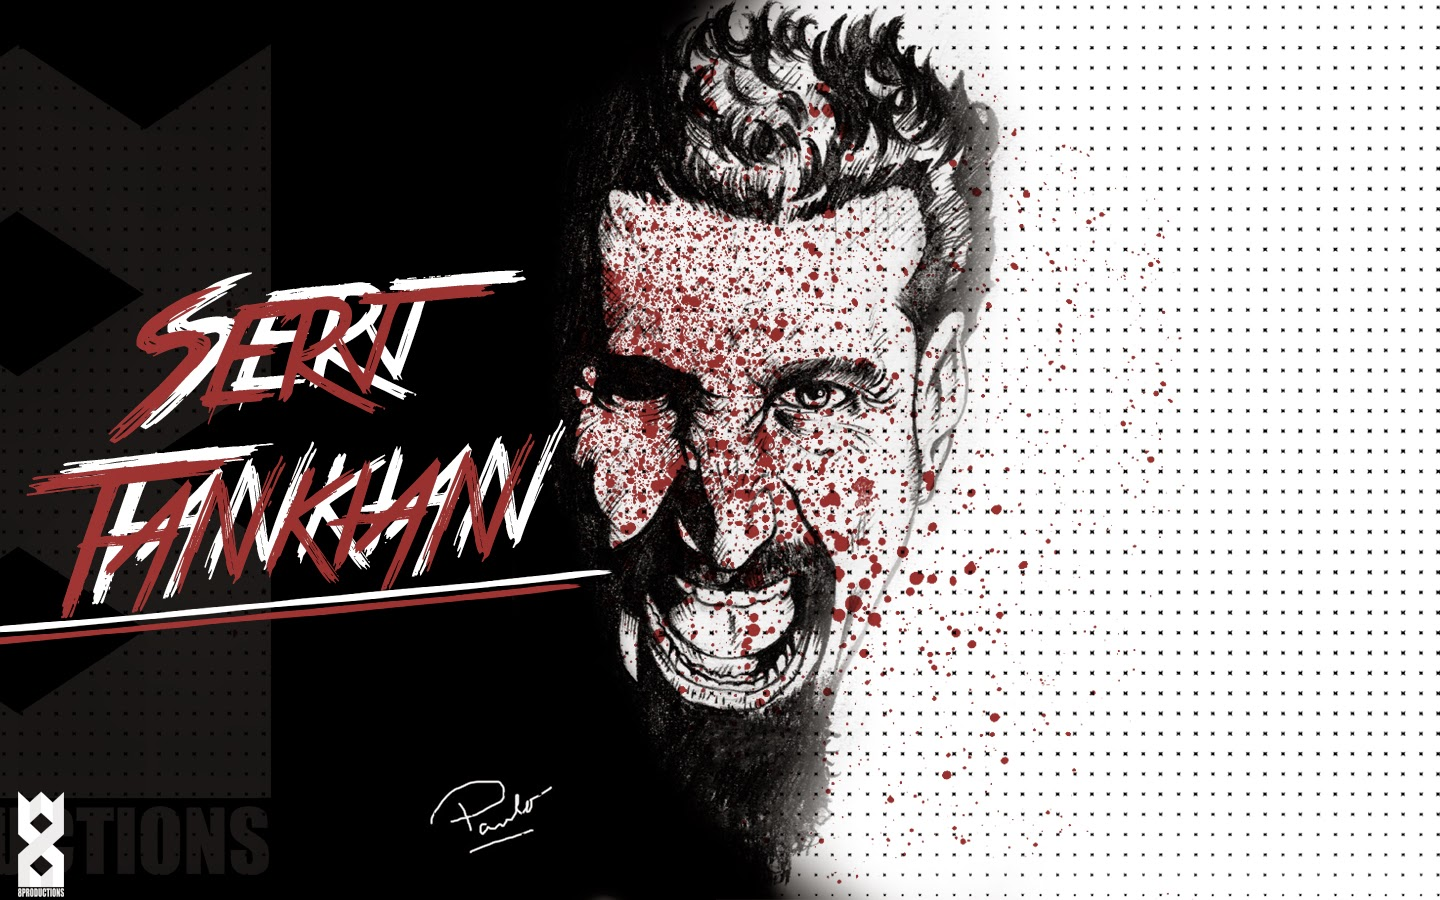 0 Serj Tankian Wallpaper System Of A Down Fan Art 1489087